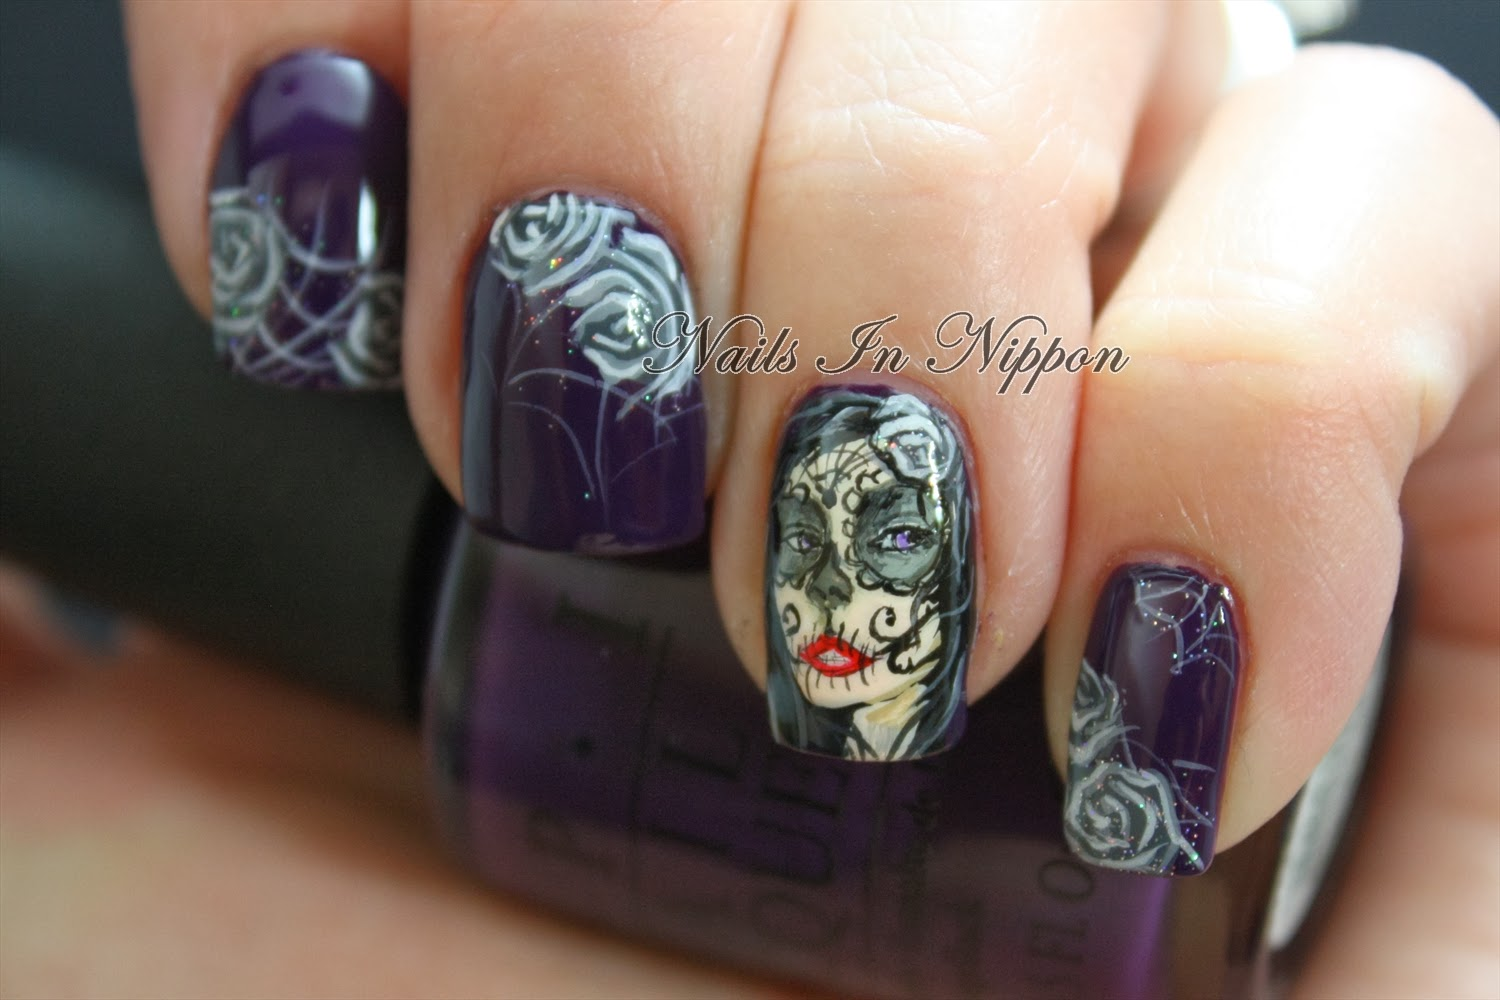 Nails In Nippon: Sugar Skull Girl with Roses and Spiderwebs